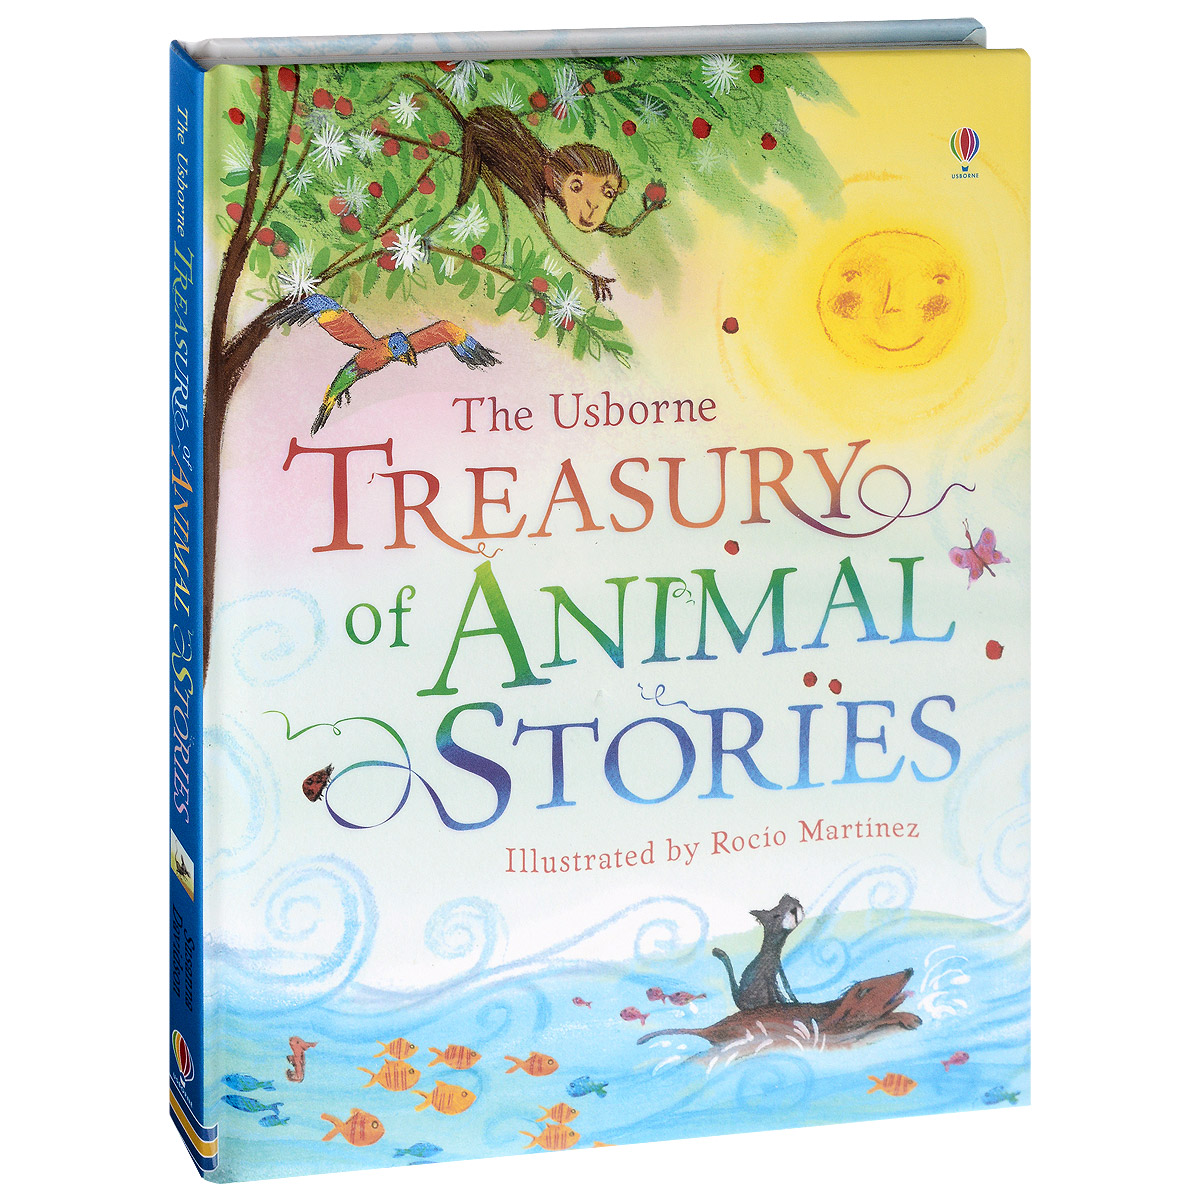 The Usborne Treasury of Animal Stories seeing things as they are